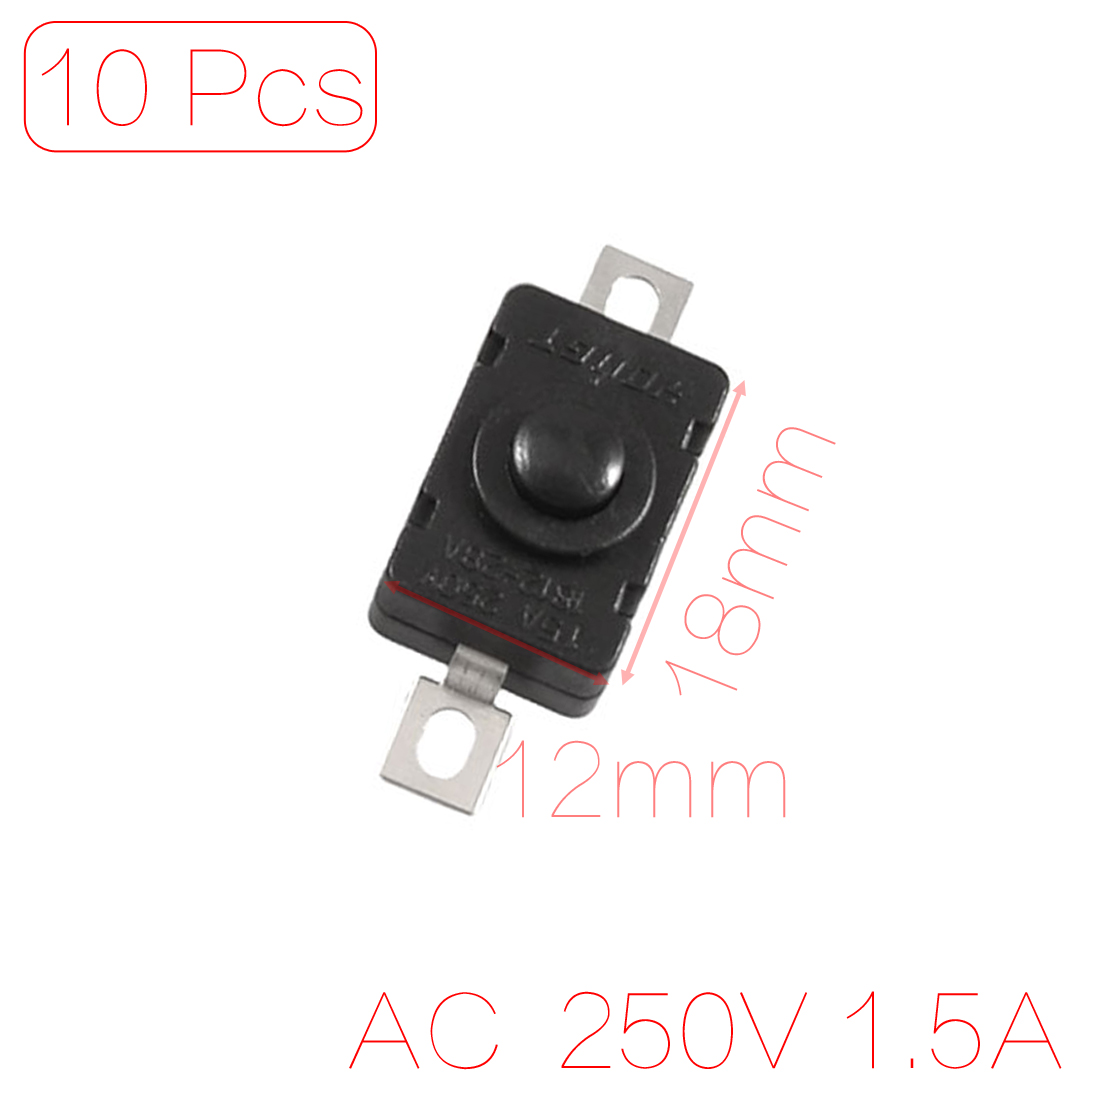 UXCELL Contact Type 10 Pcs 2 Terminal Spst Latching Push Button Switch Ac/ 250V 1.5A For Torch latching uxcell on off 2 position 3p latching power push button switch ac 220v 10a w cover latching